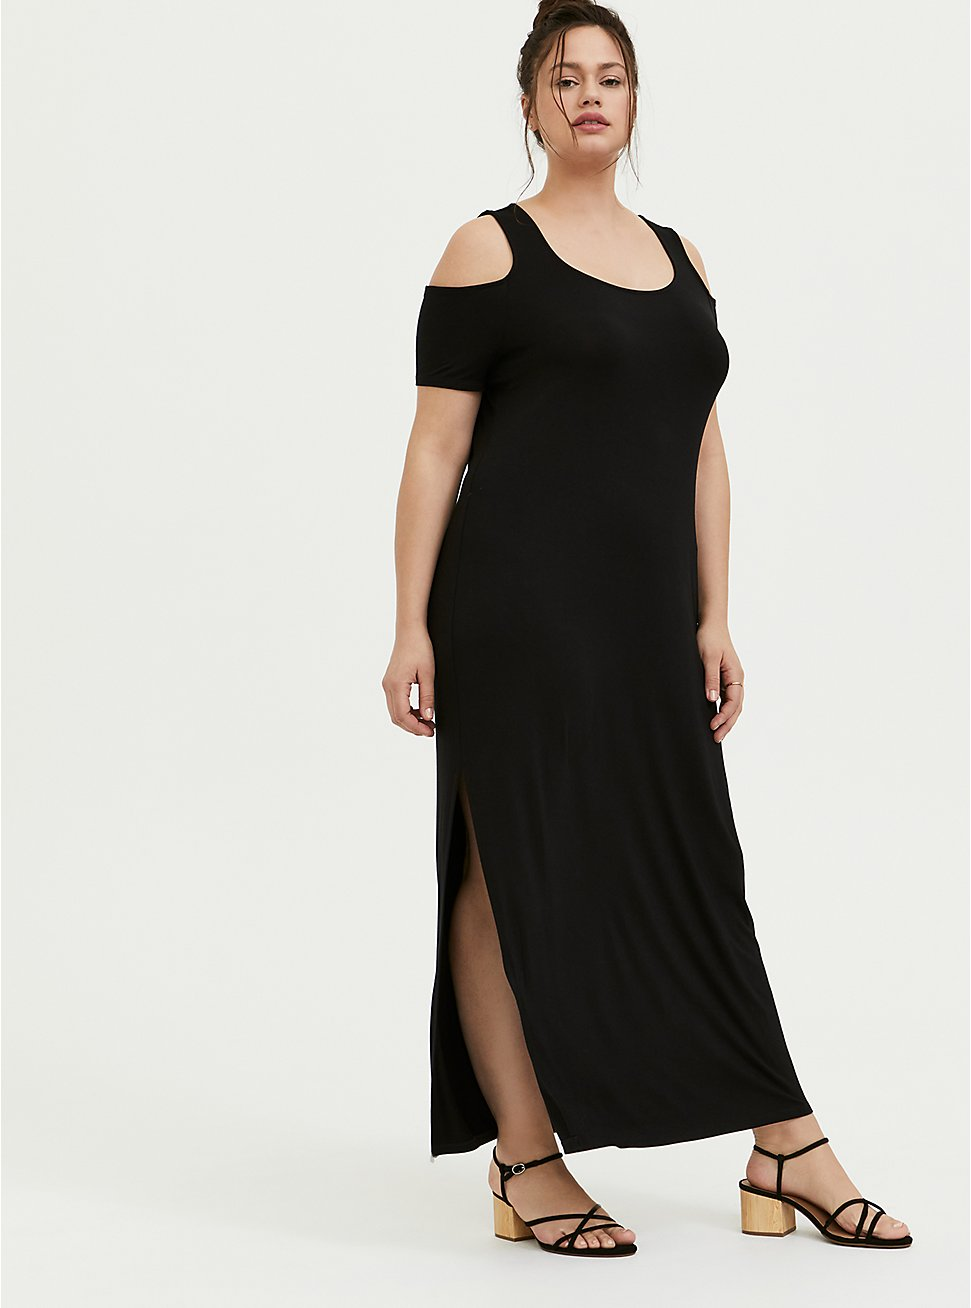 Plus Size Super Soft Black Cold Shoulder Maxi Dress, DEEP BLACK, hi-res